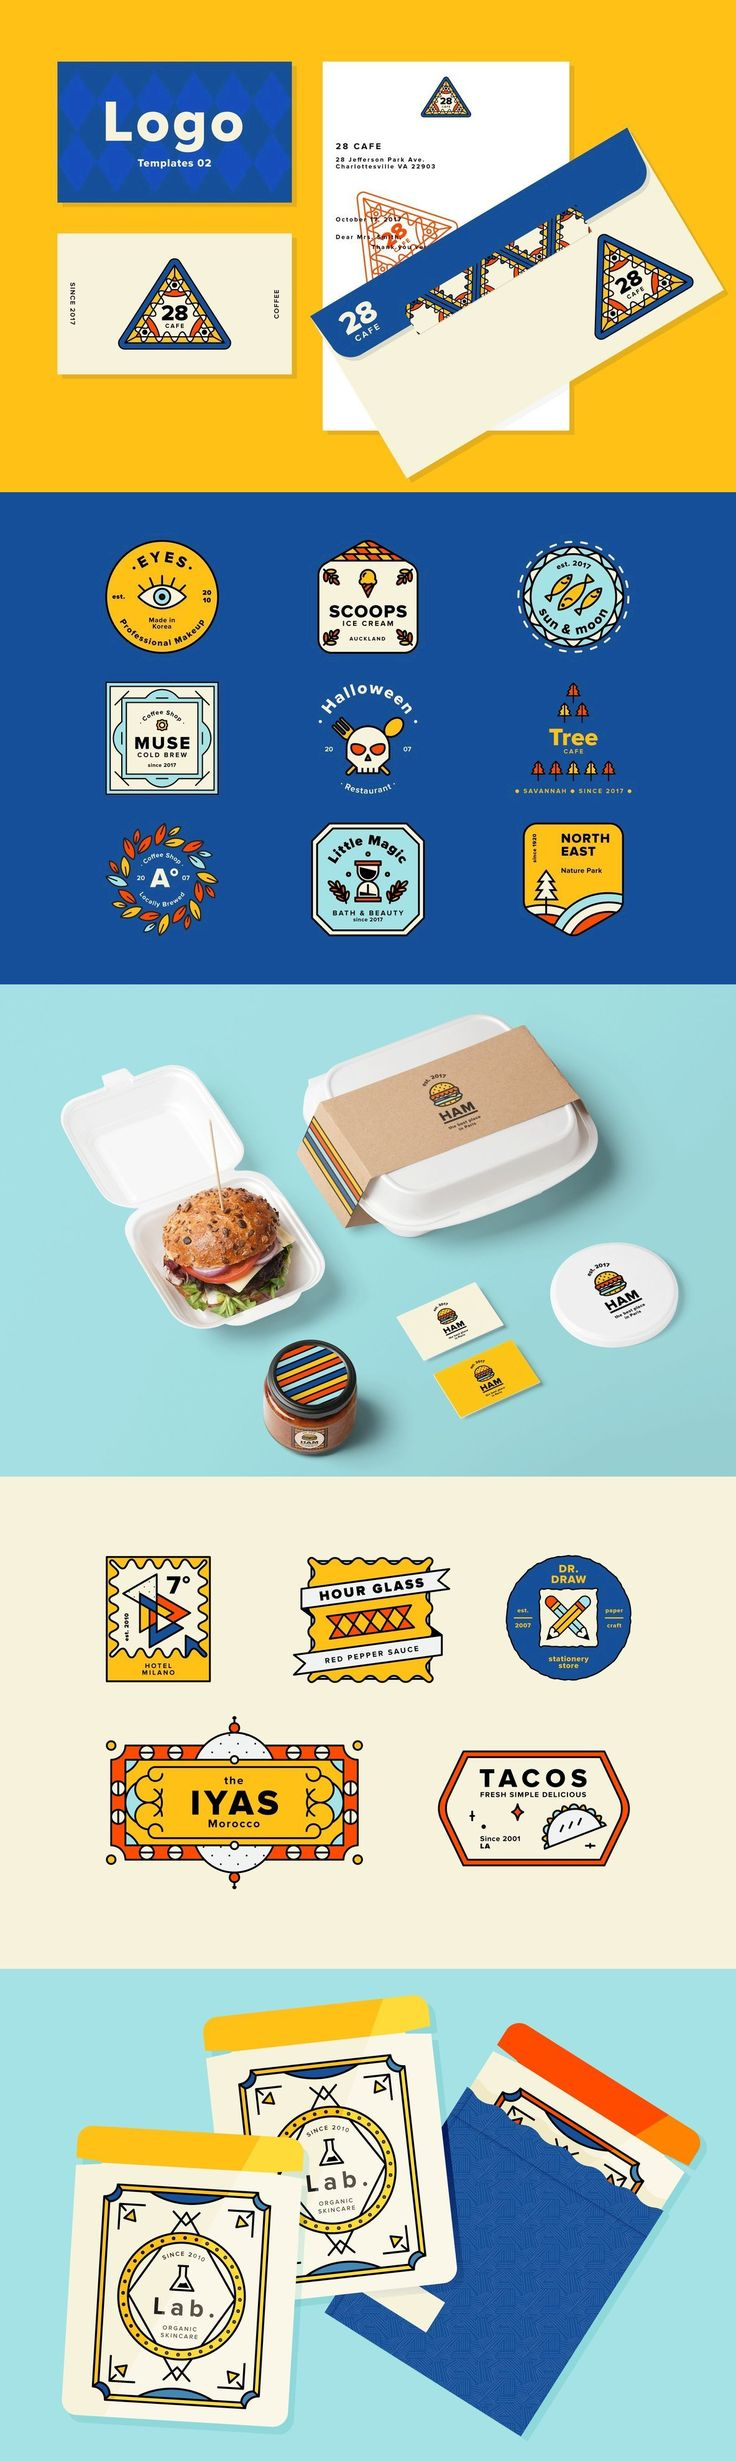 Logo Templates 02 - Logo design is serious business, and not just in terms of establishing a solid visual i...